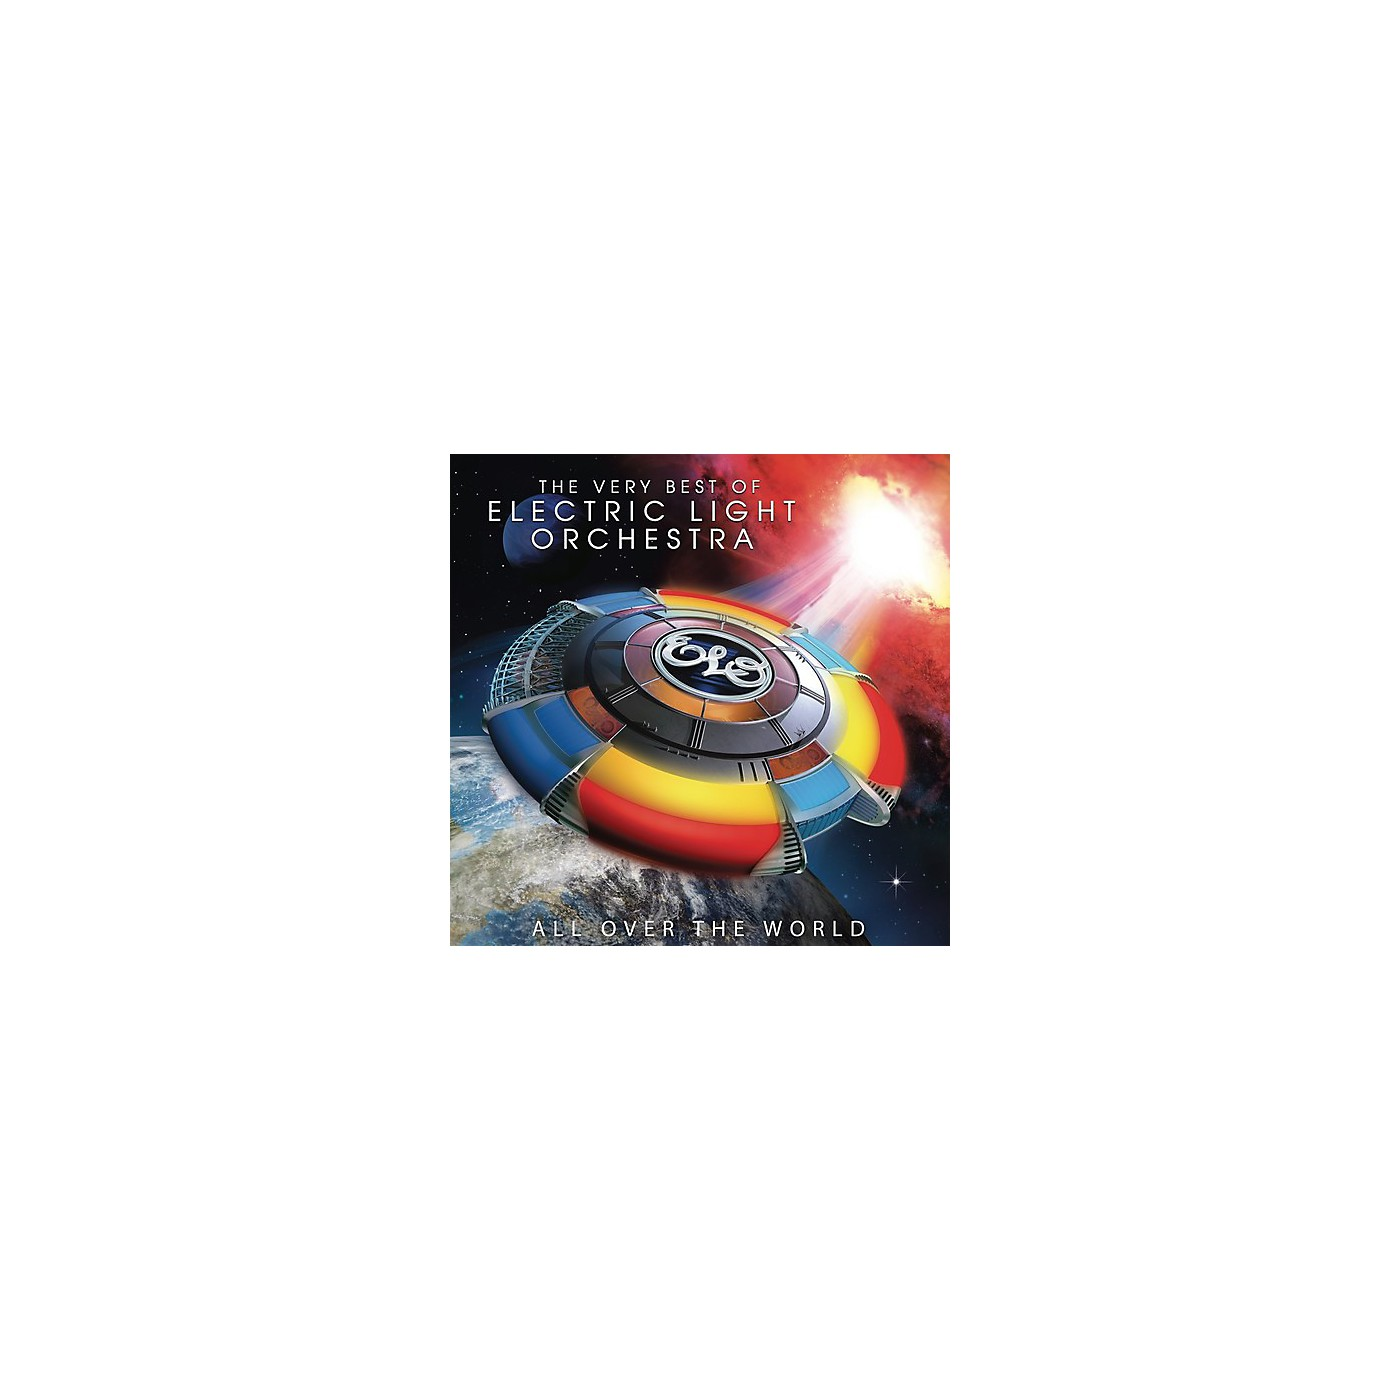 Alliance Elo ( Electric Light Orchestra ) - All Over The World: The Very Best Of Electric Light Orchestra thumbnail